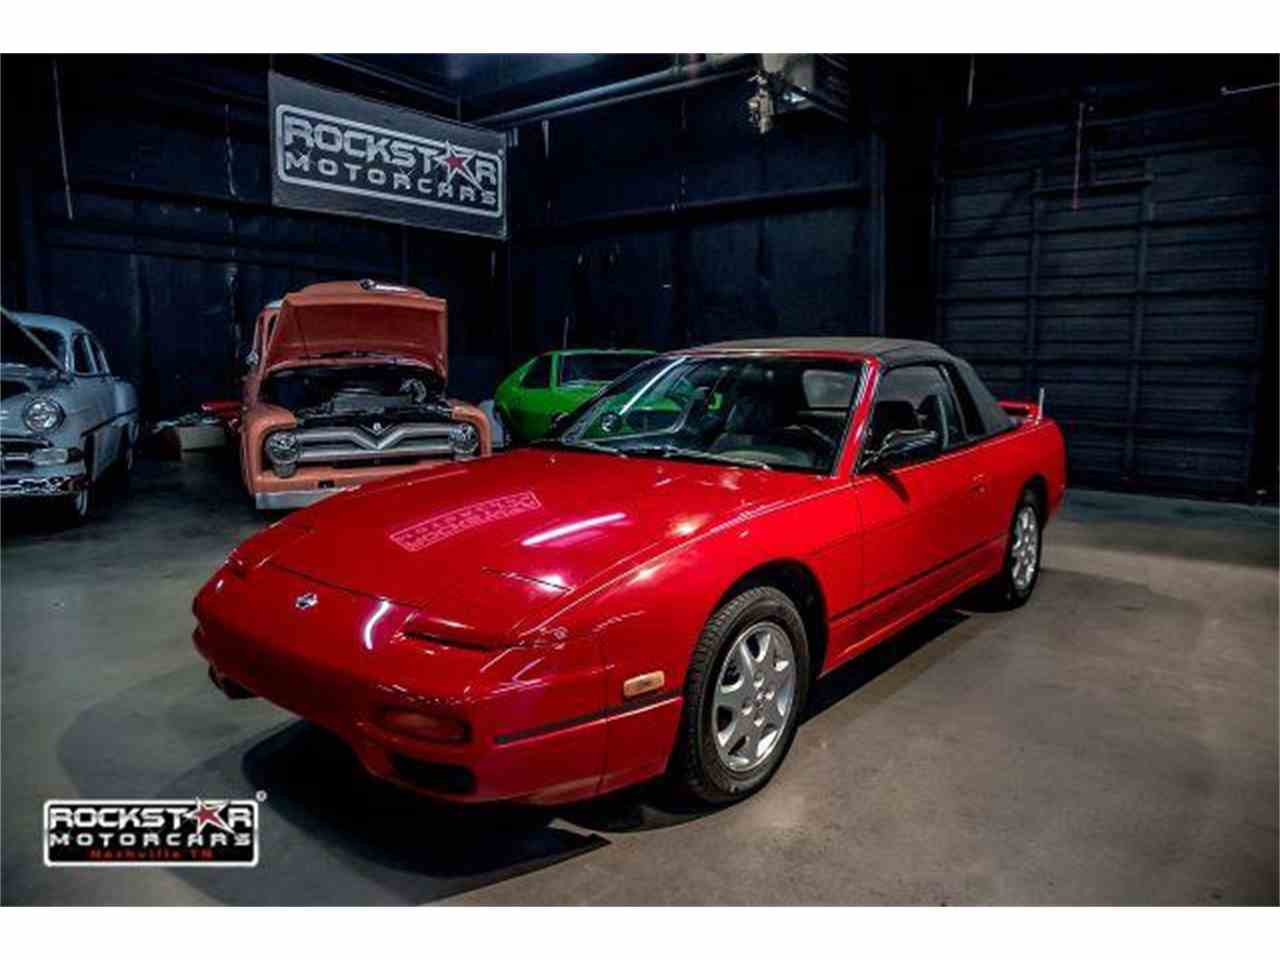 pic for overview sale cars cargurus nissan